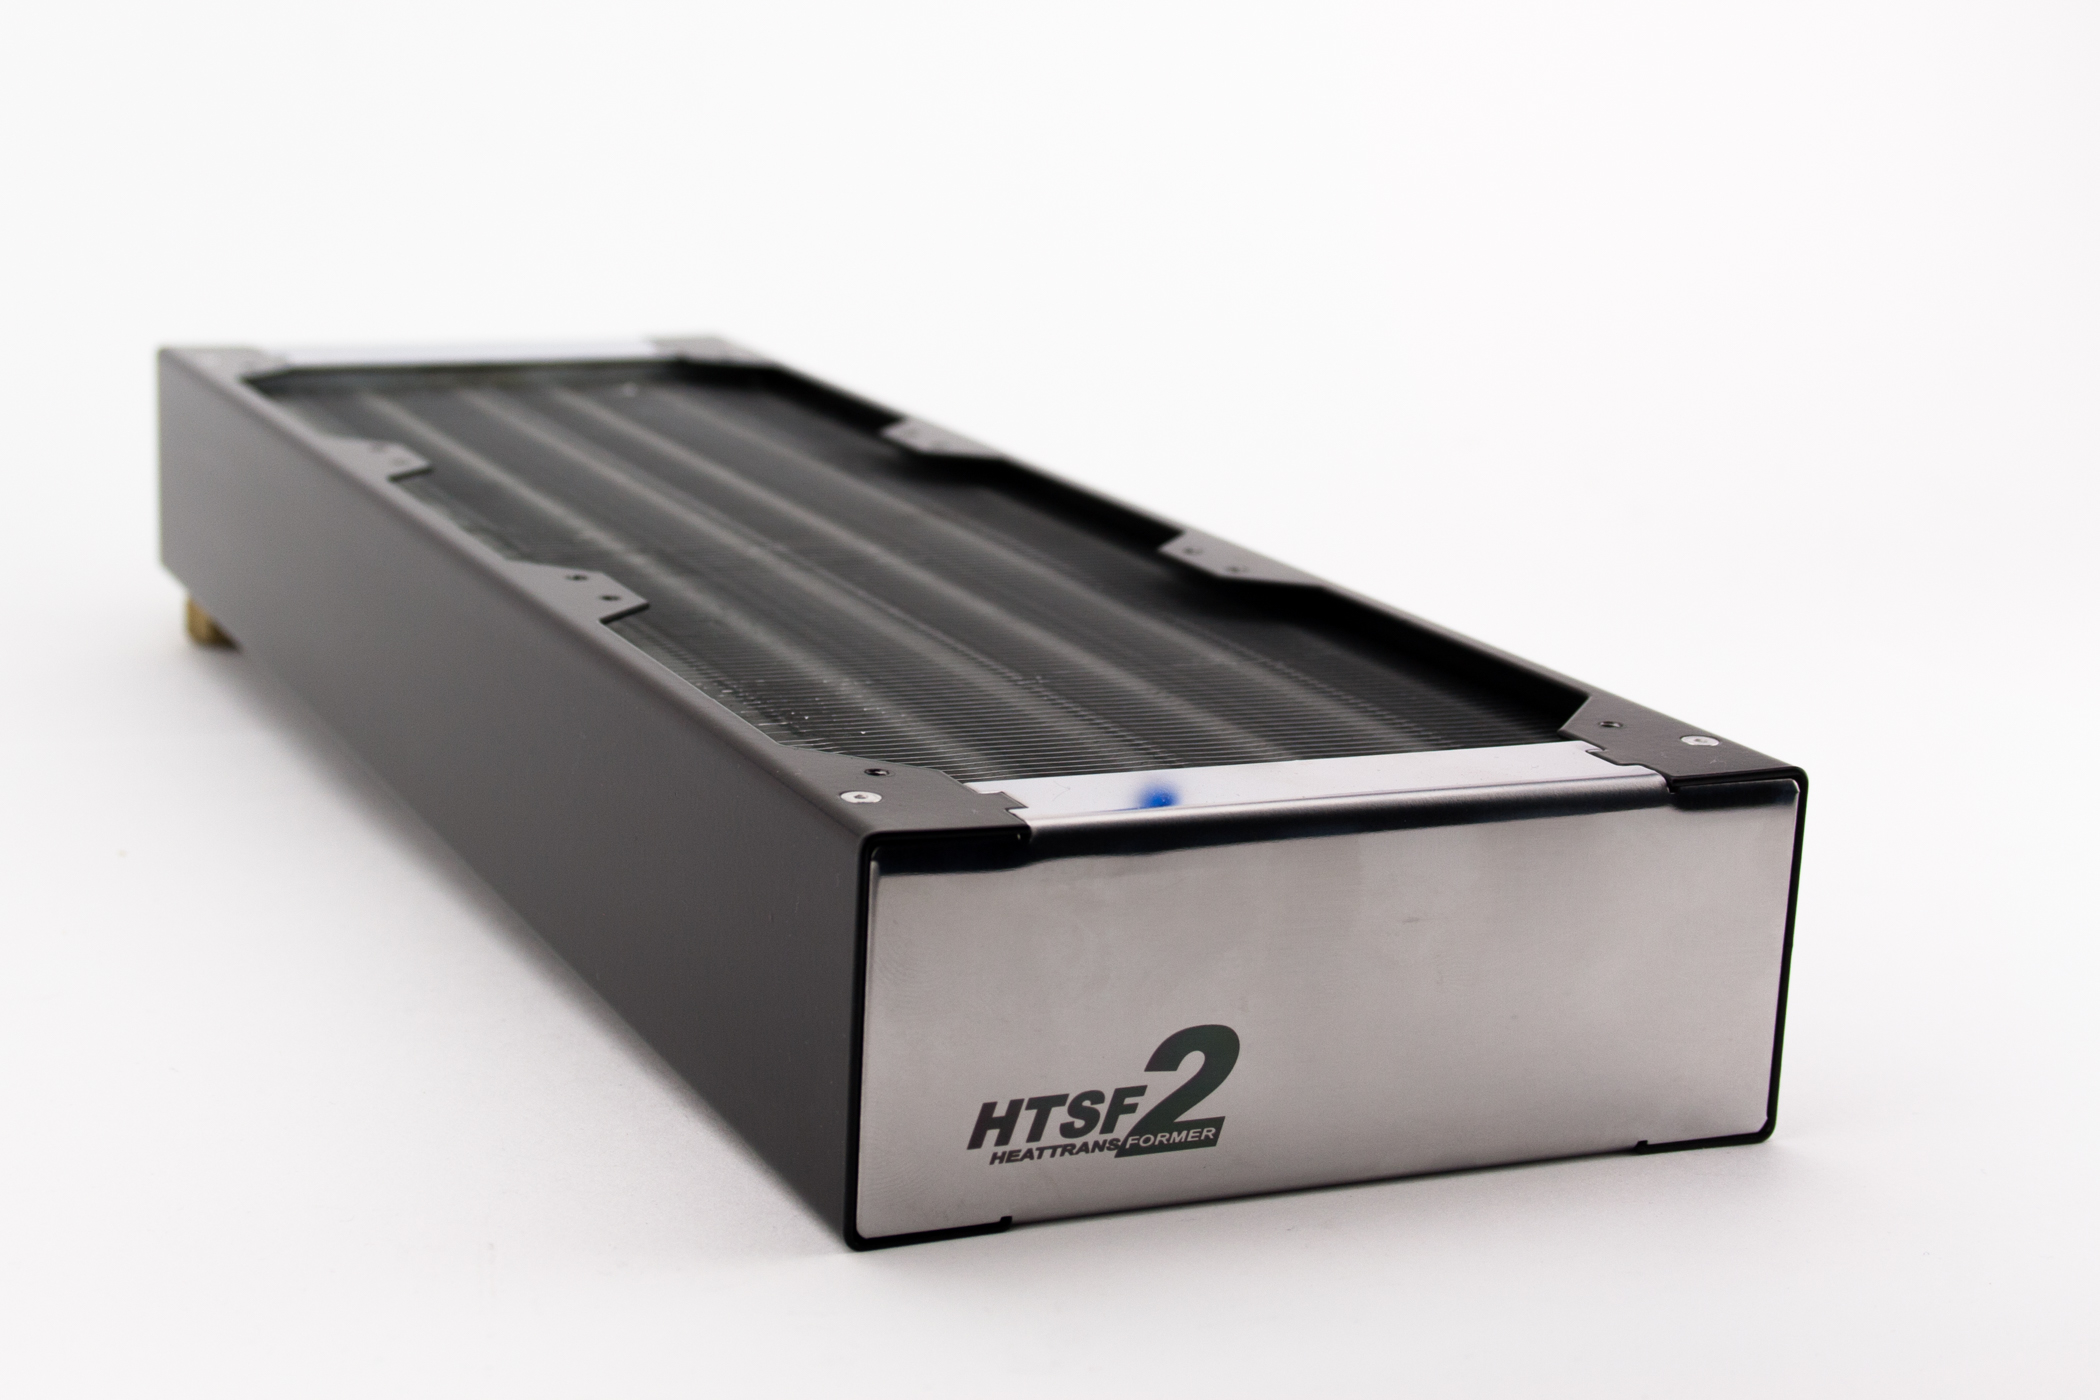 watercool htsf2 3x120 lt 360 radiator review - extremerigs